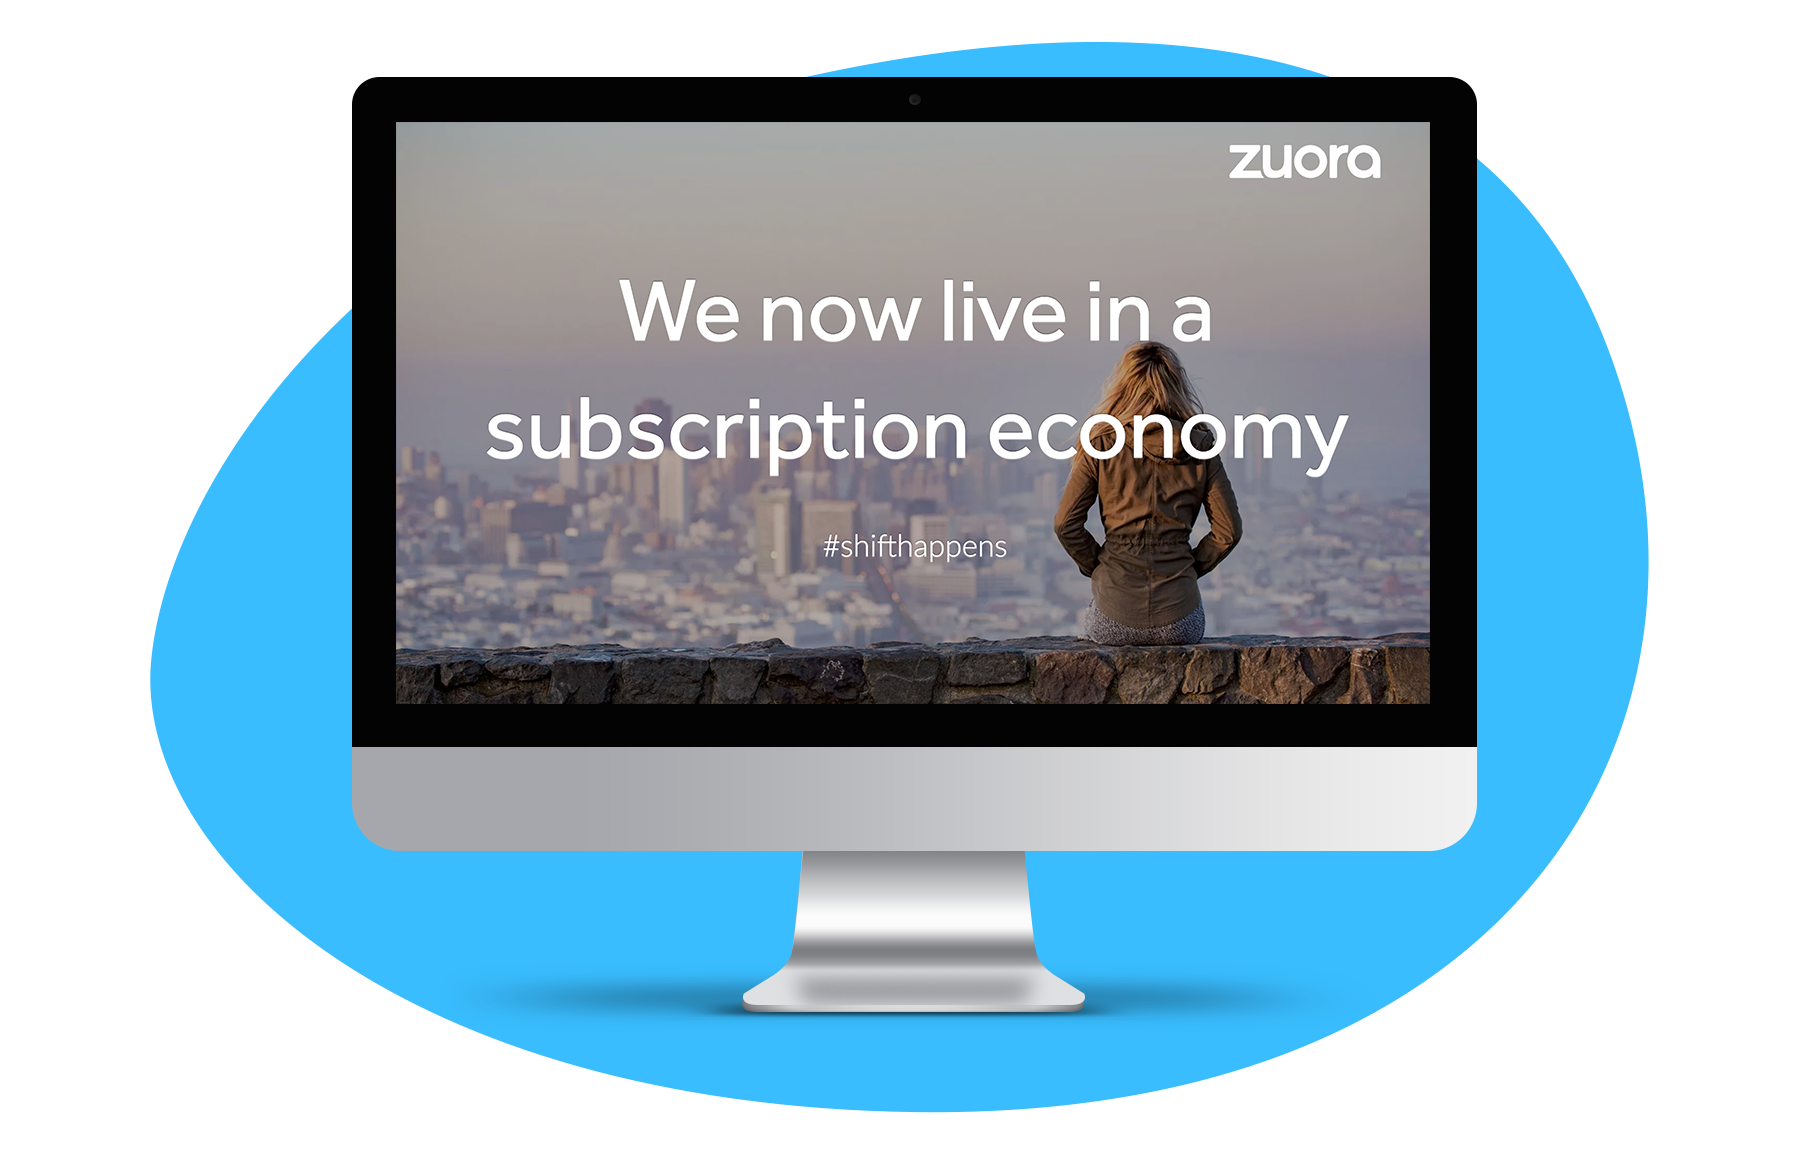 2subscription-economy.png